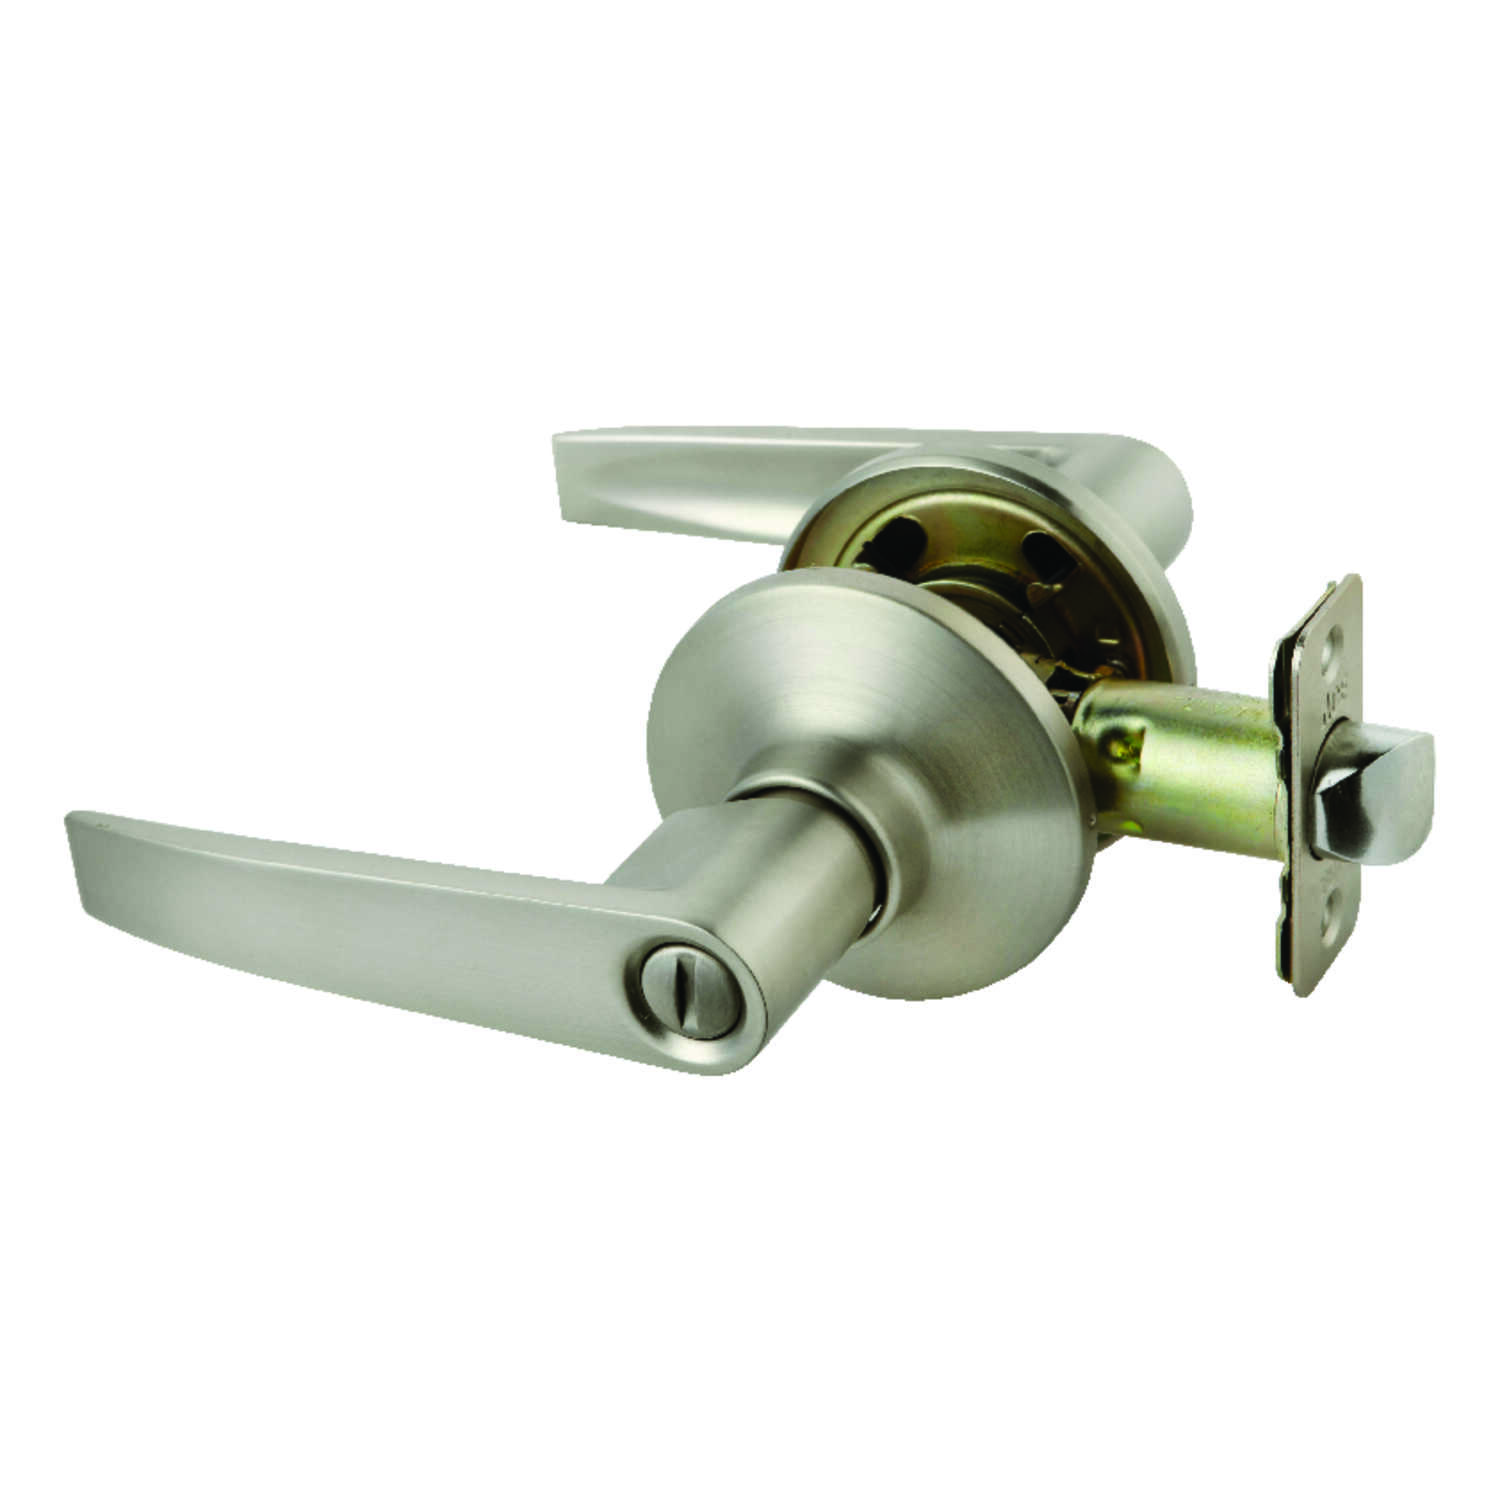 Ace  Straight Lever  Satin  Stainless Steel  ANSI Grade 3  Privacy Lockset  1-3/4 in.